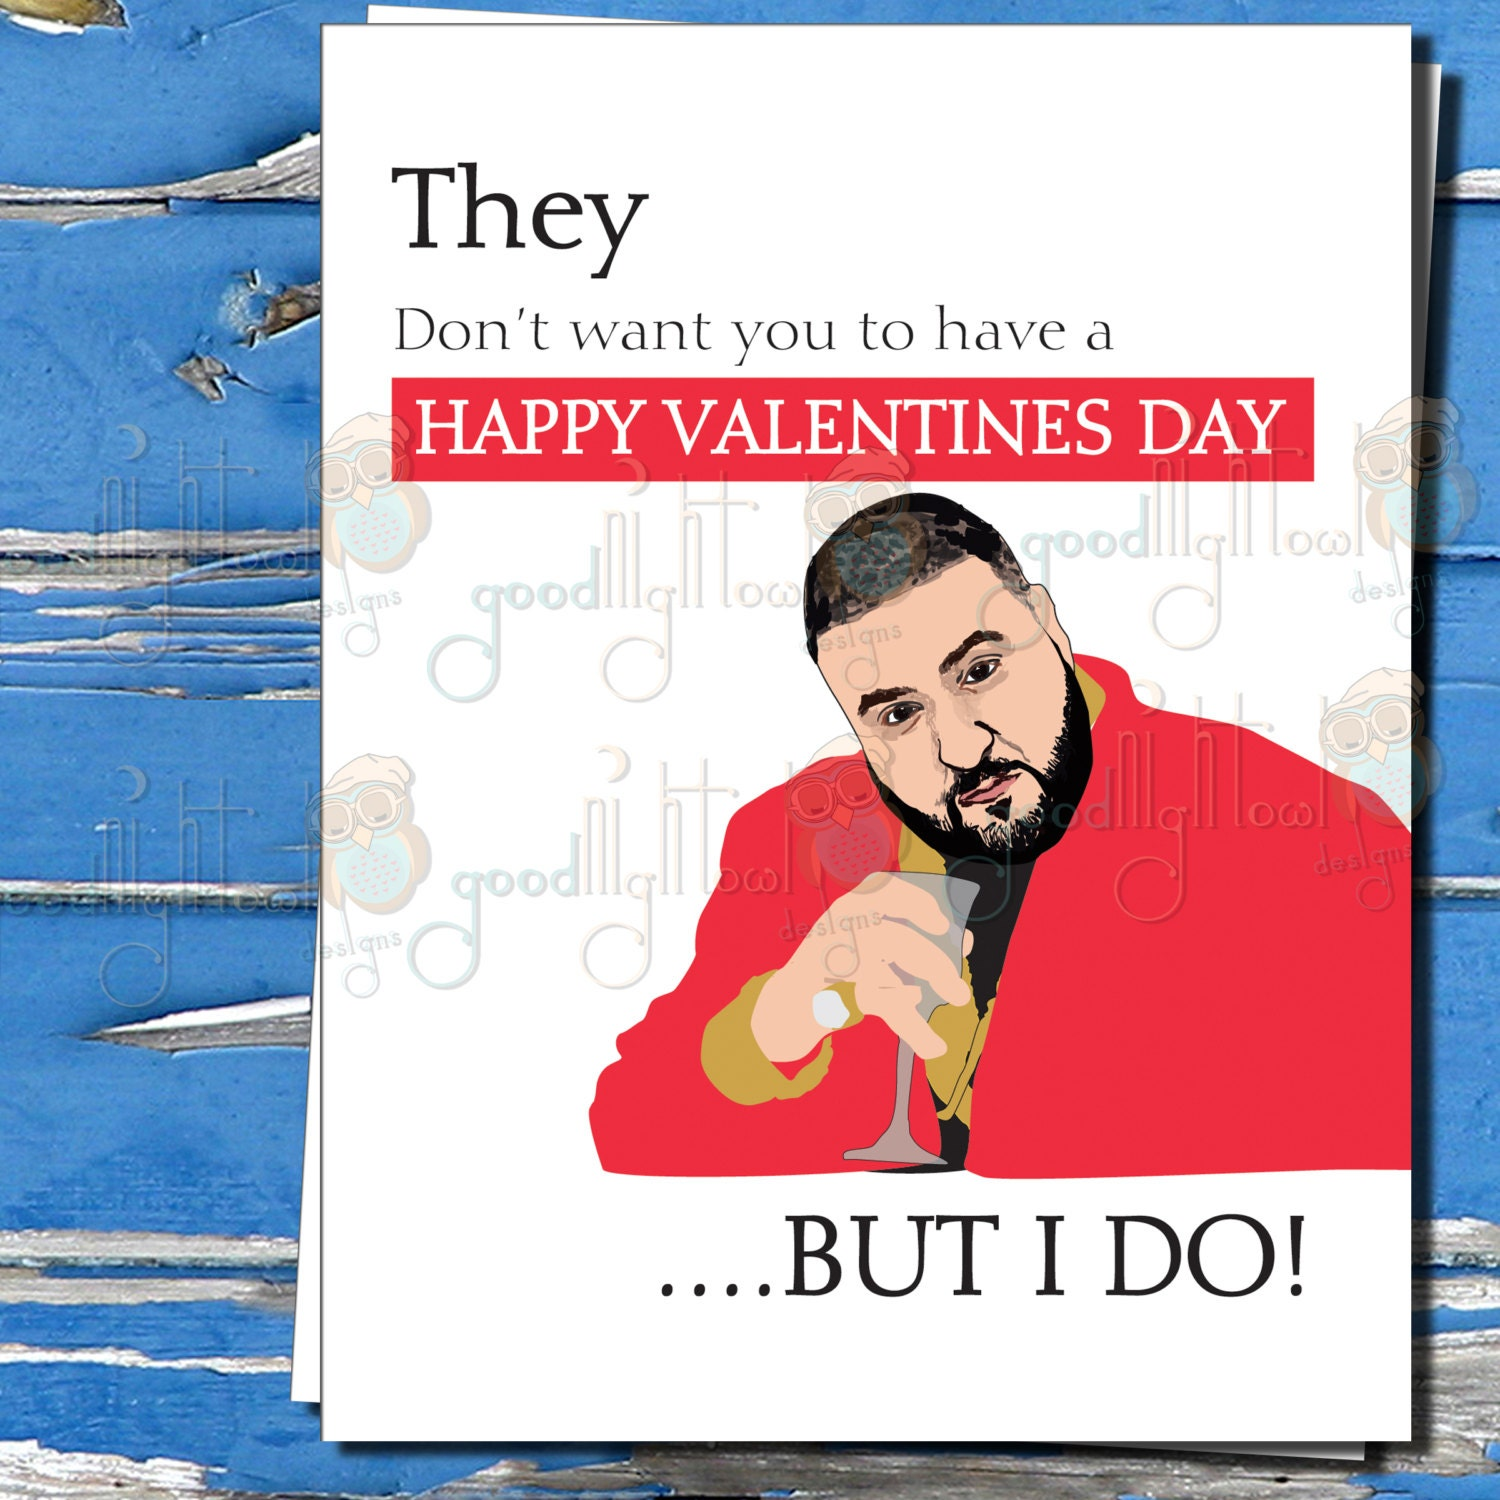 Funny Meme Valentines Day Cards : Dj khaled funny valentines day card they don t want